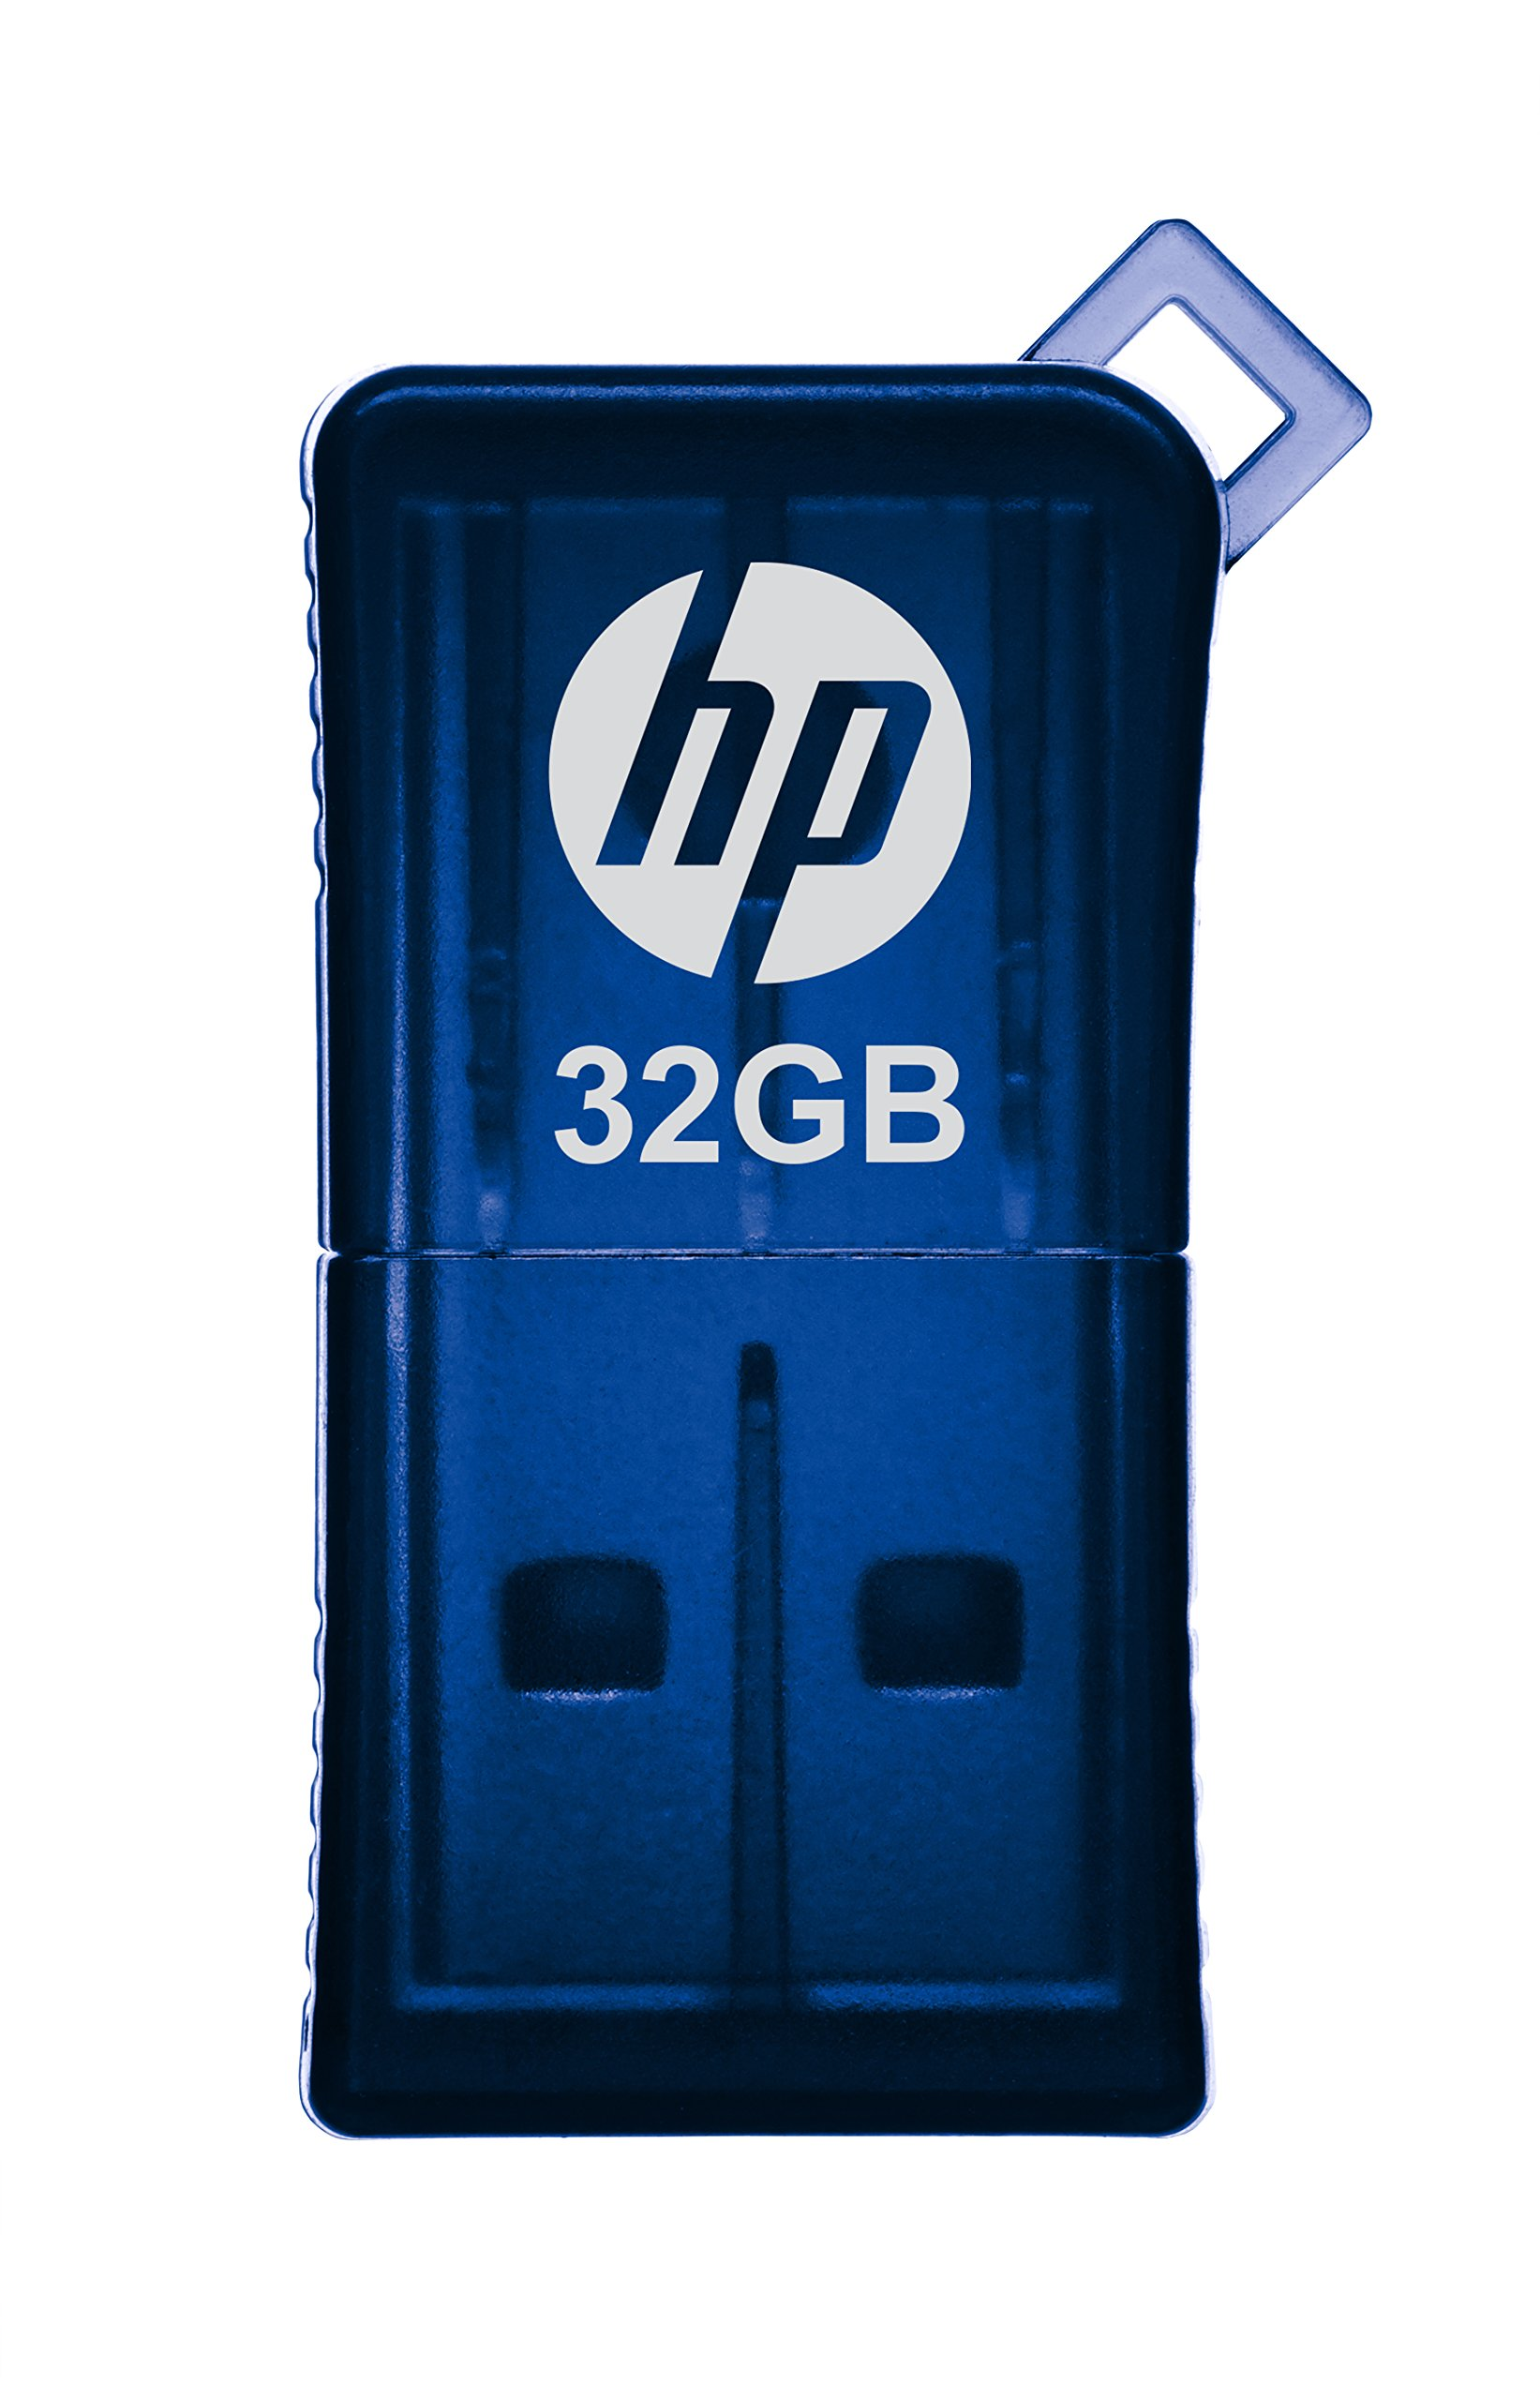 Pendrive HP V165w 32GB USB 2.0 - Blue - P-FD32GHP165-GE